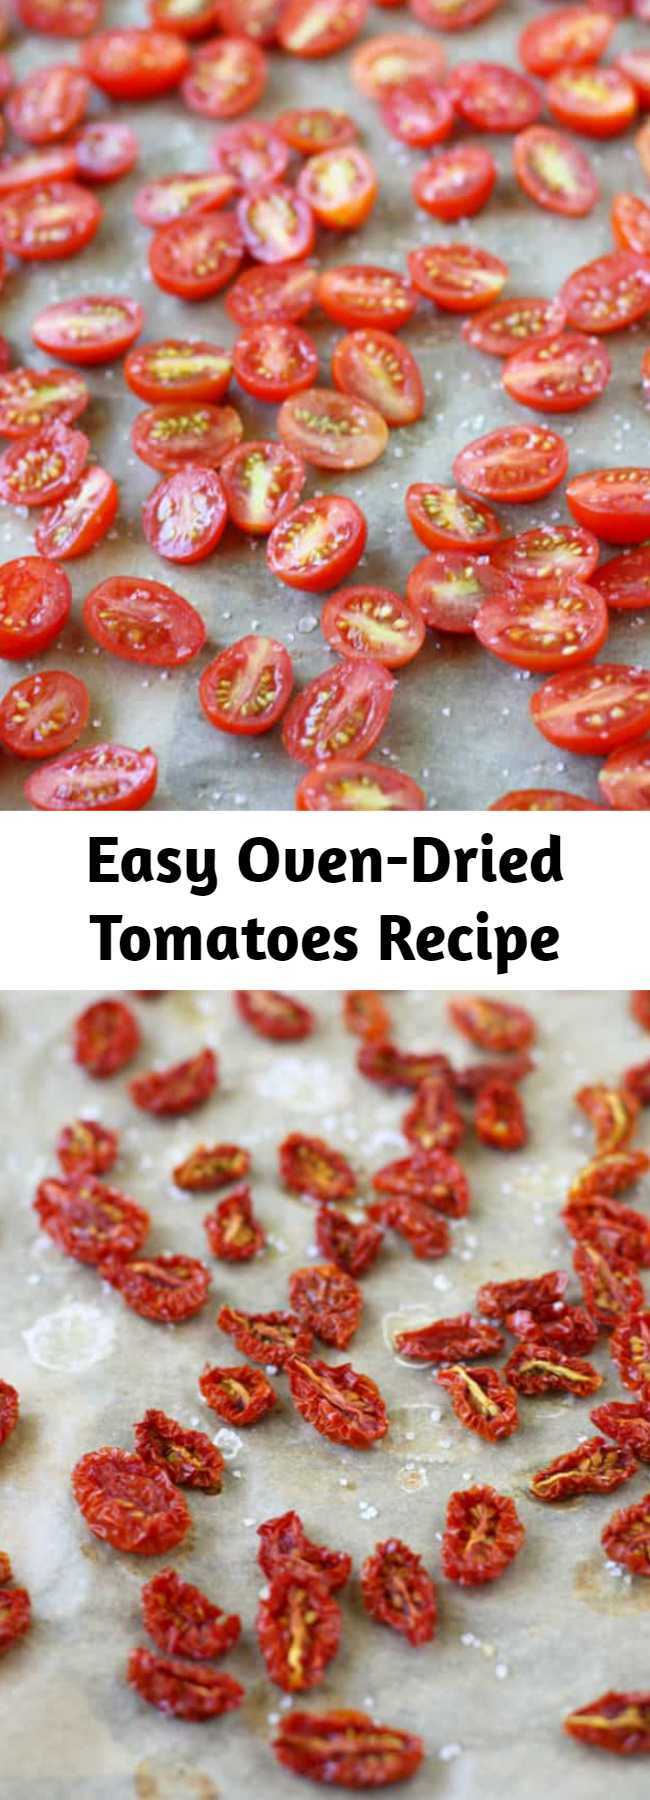 Easy Oven-Dried Tomatoes Recipe - It's so easy to make delicious oven-dried tomatoes at home! These little gems are bursting with sun-kissed garden flavor!